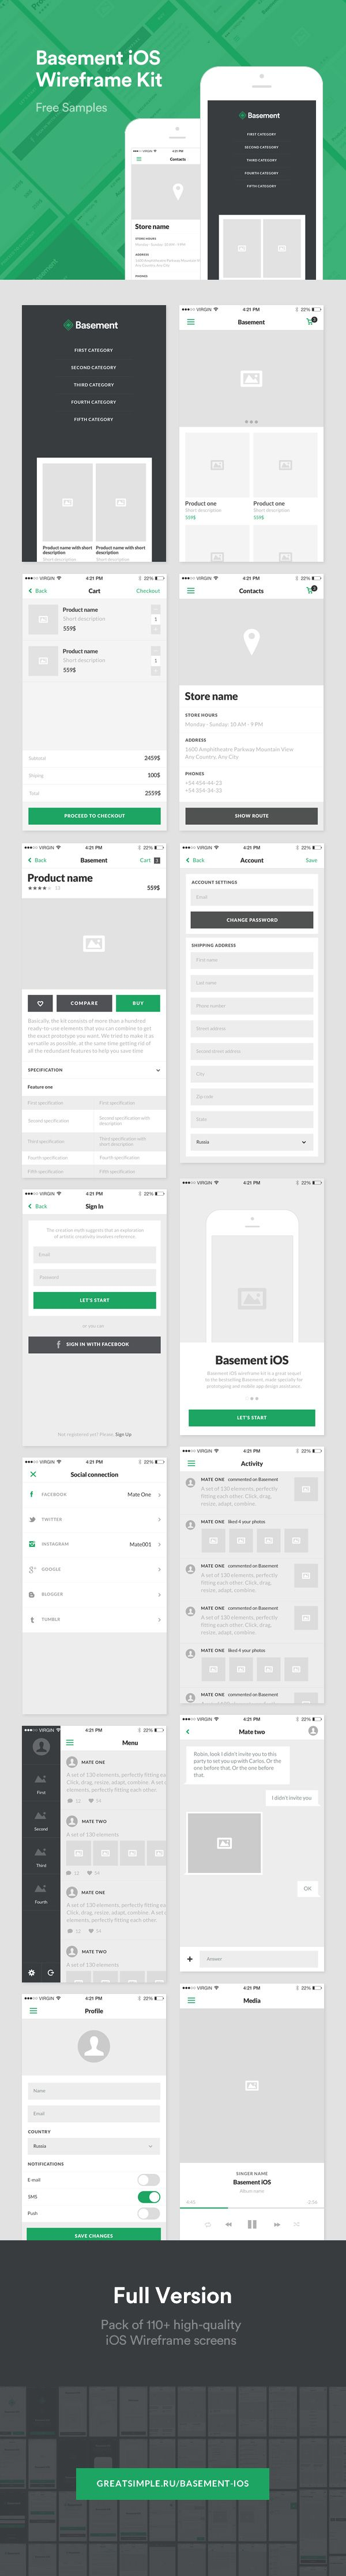 This well crafted UI wireframe kit will help you prototype and design your next iOS app or mobile website in a quick...